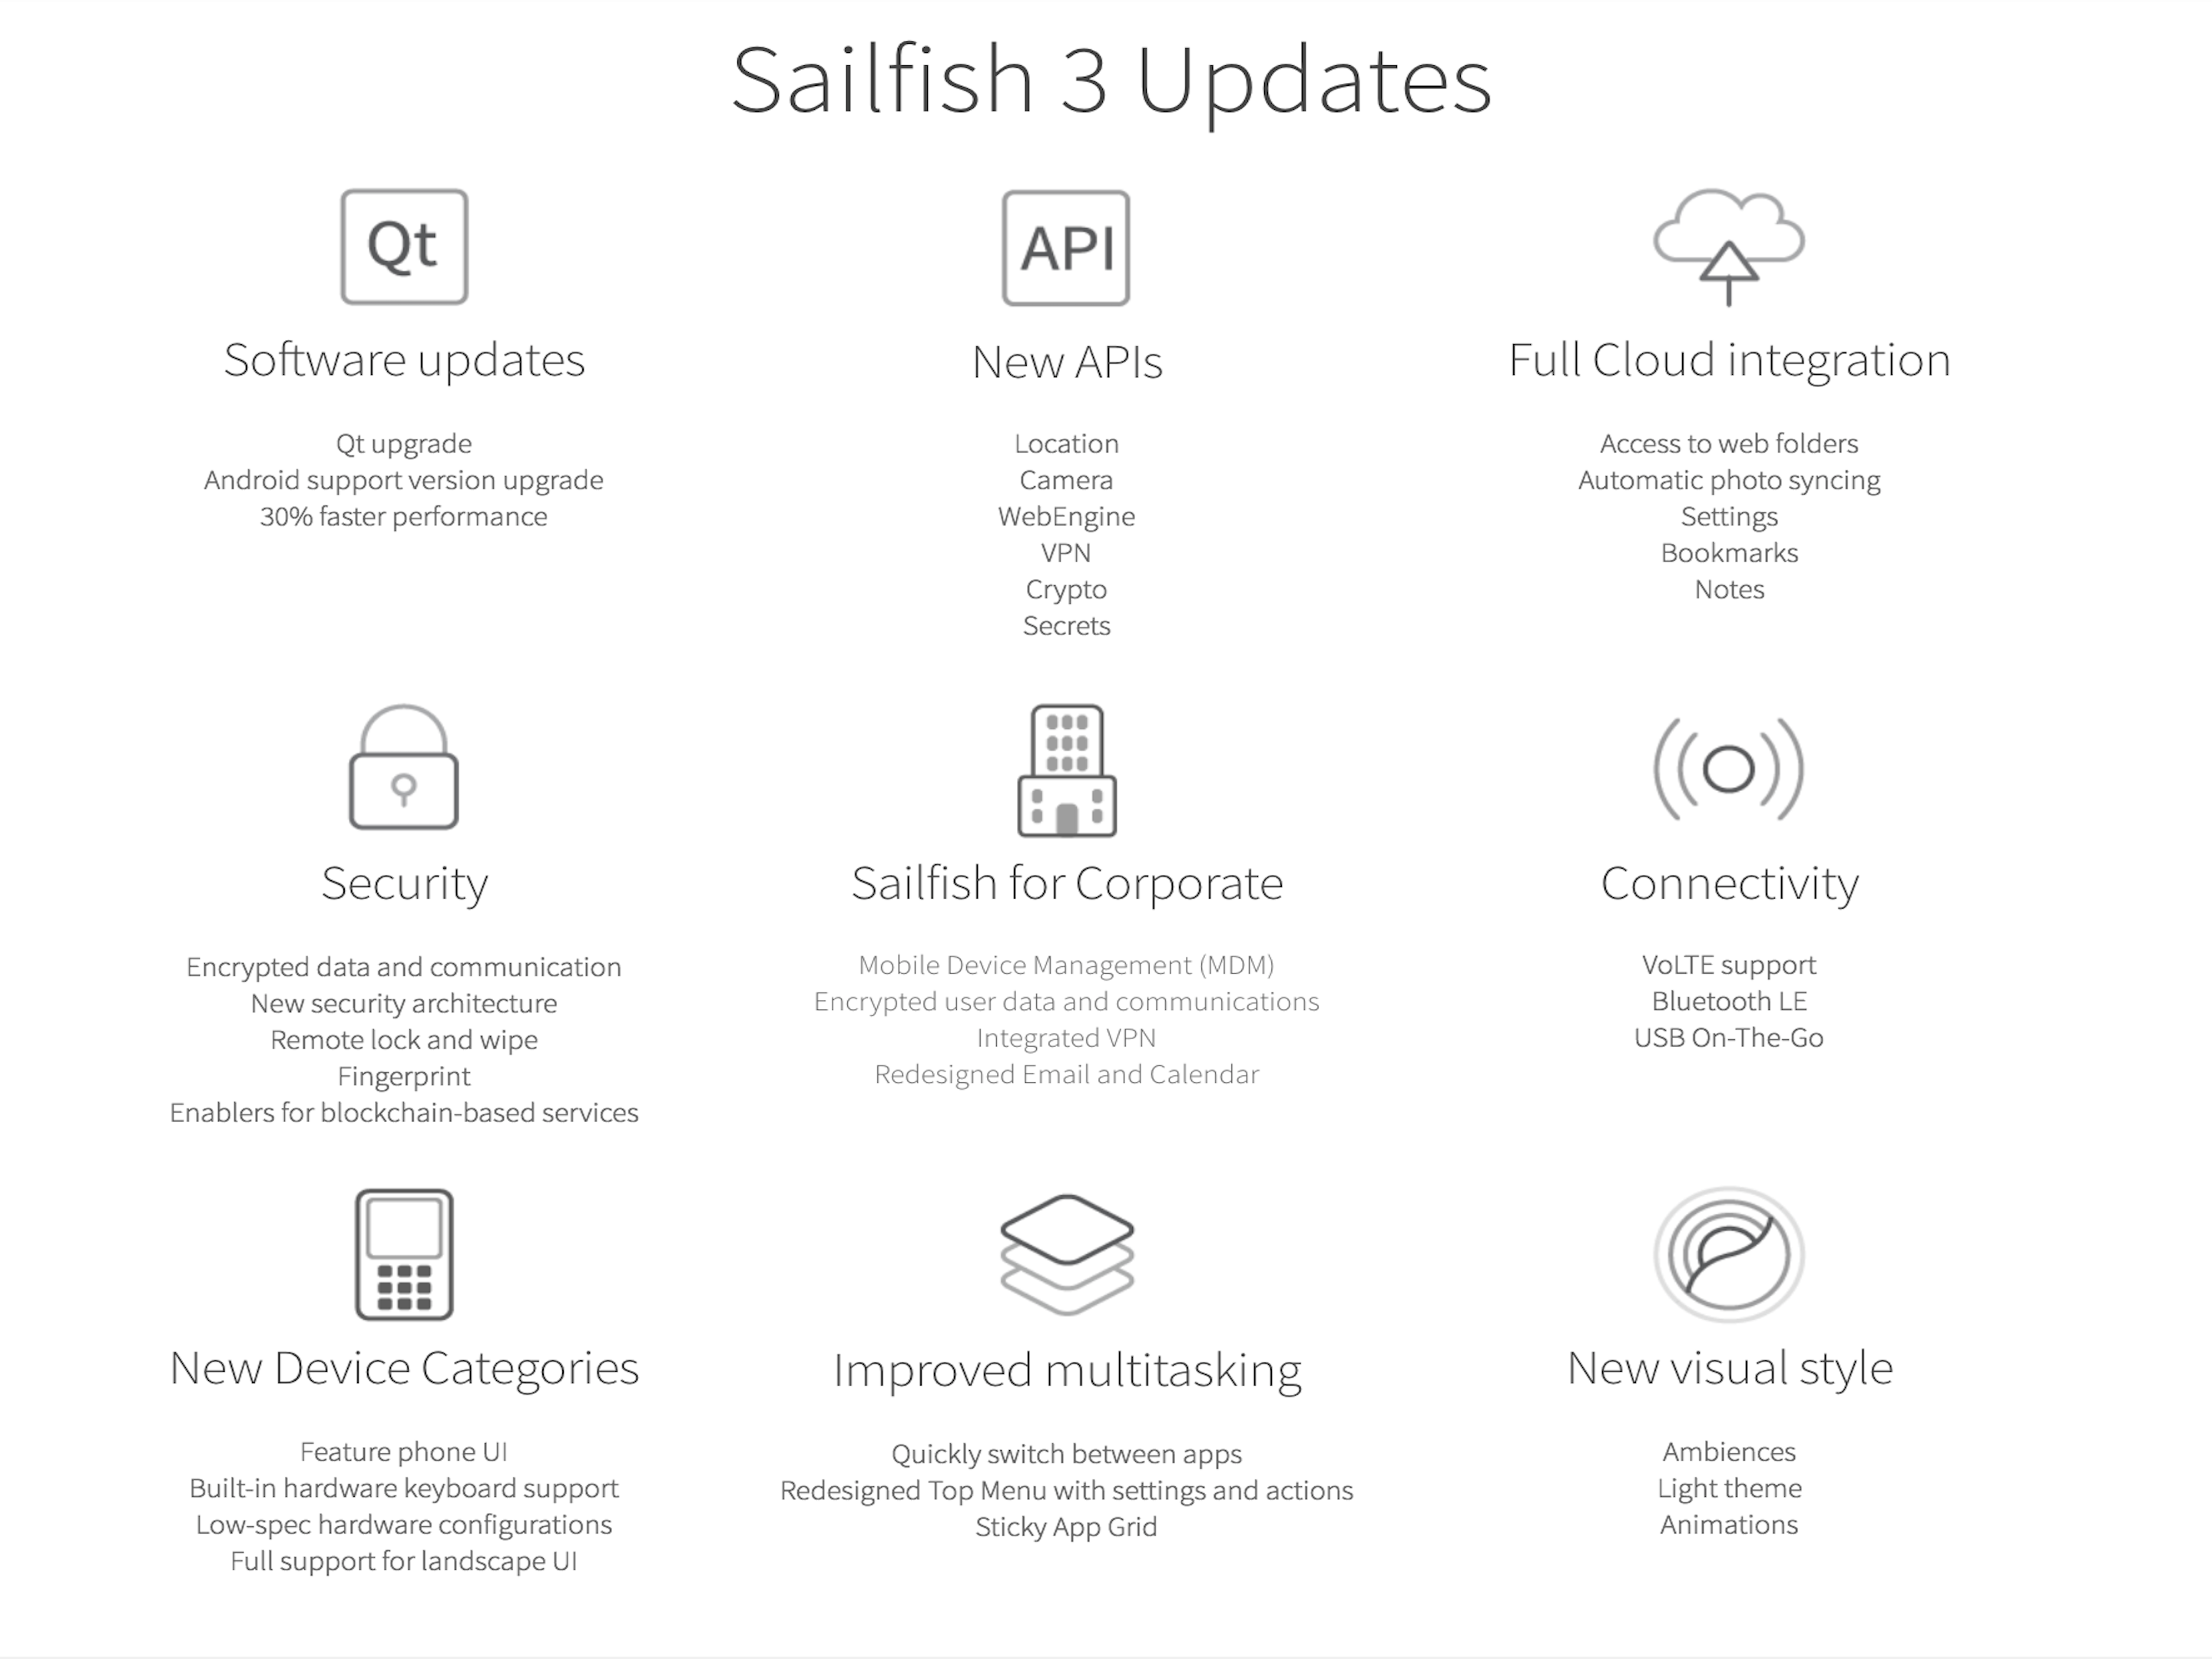 A list of all the updates coming to Sailfish OS